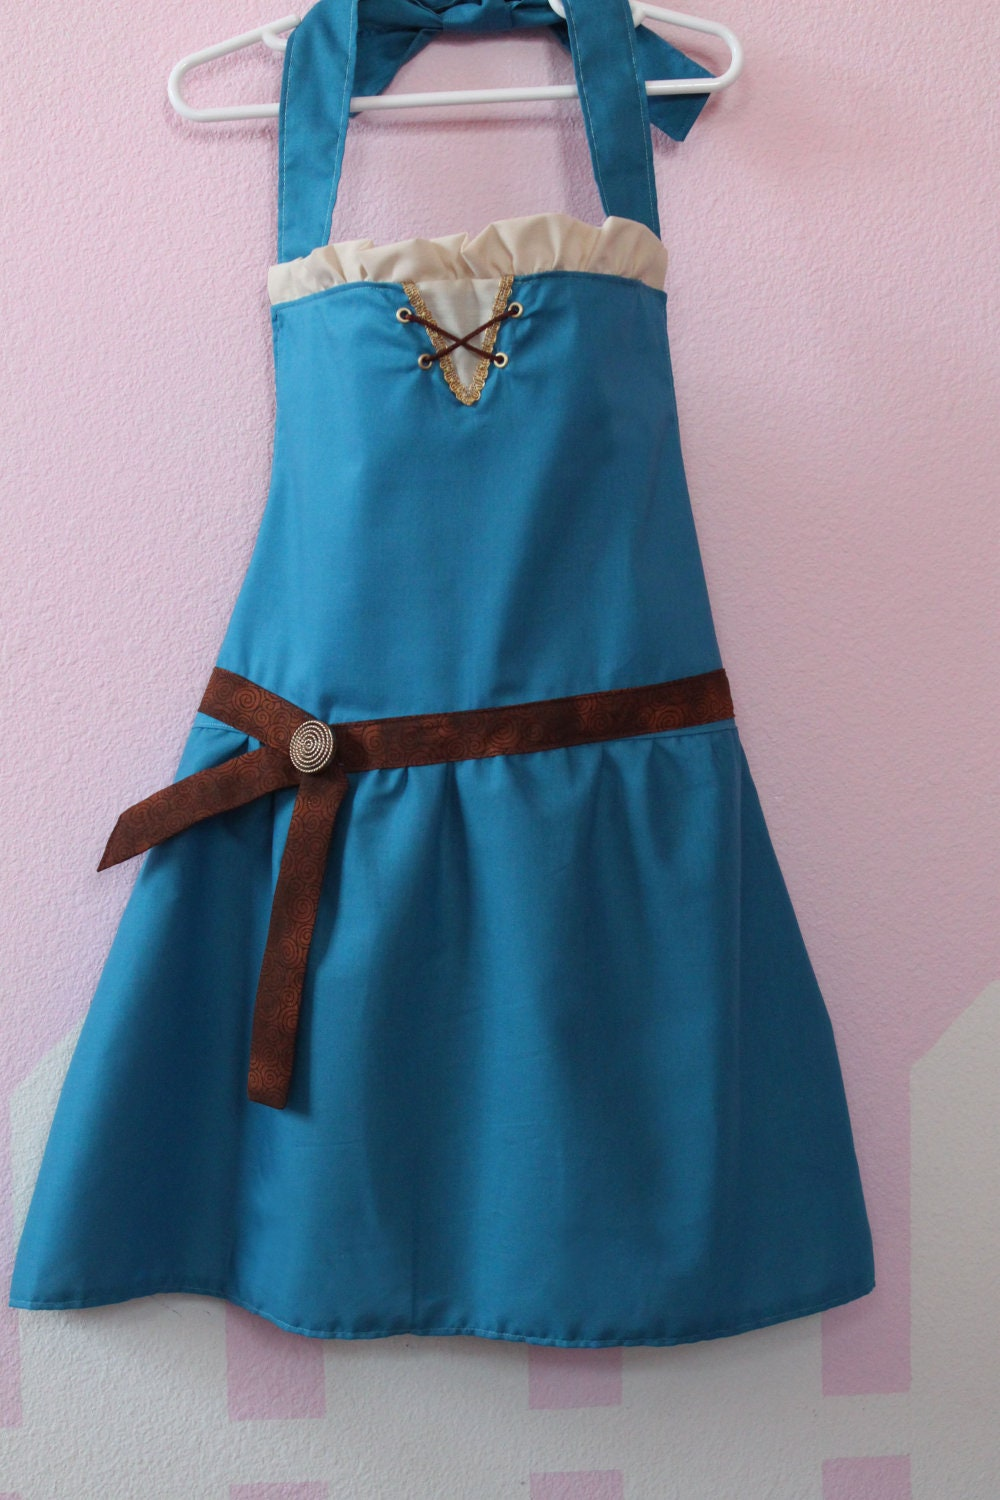 Brave Merida inspired dress up apron princess party